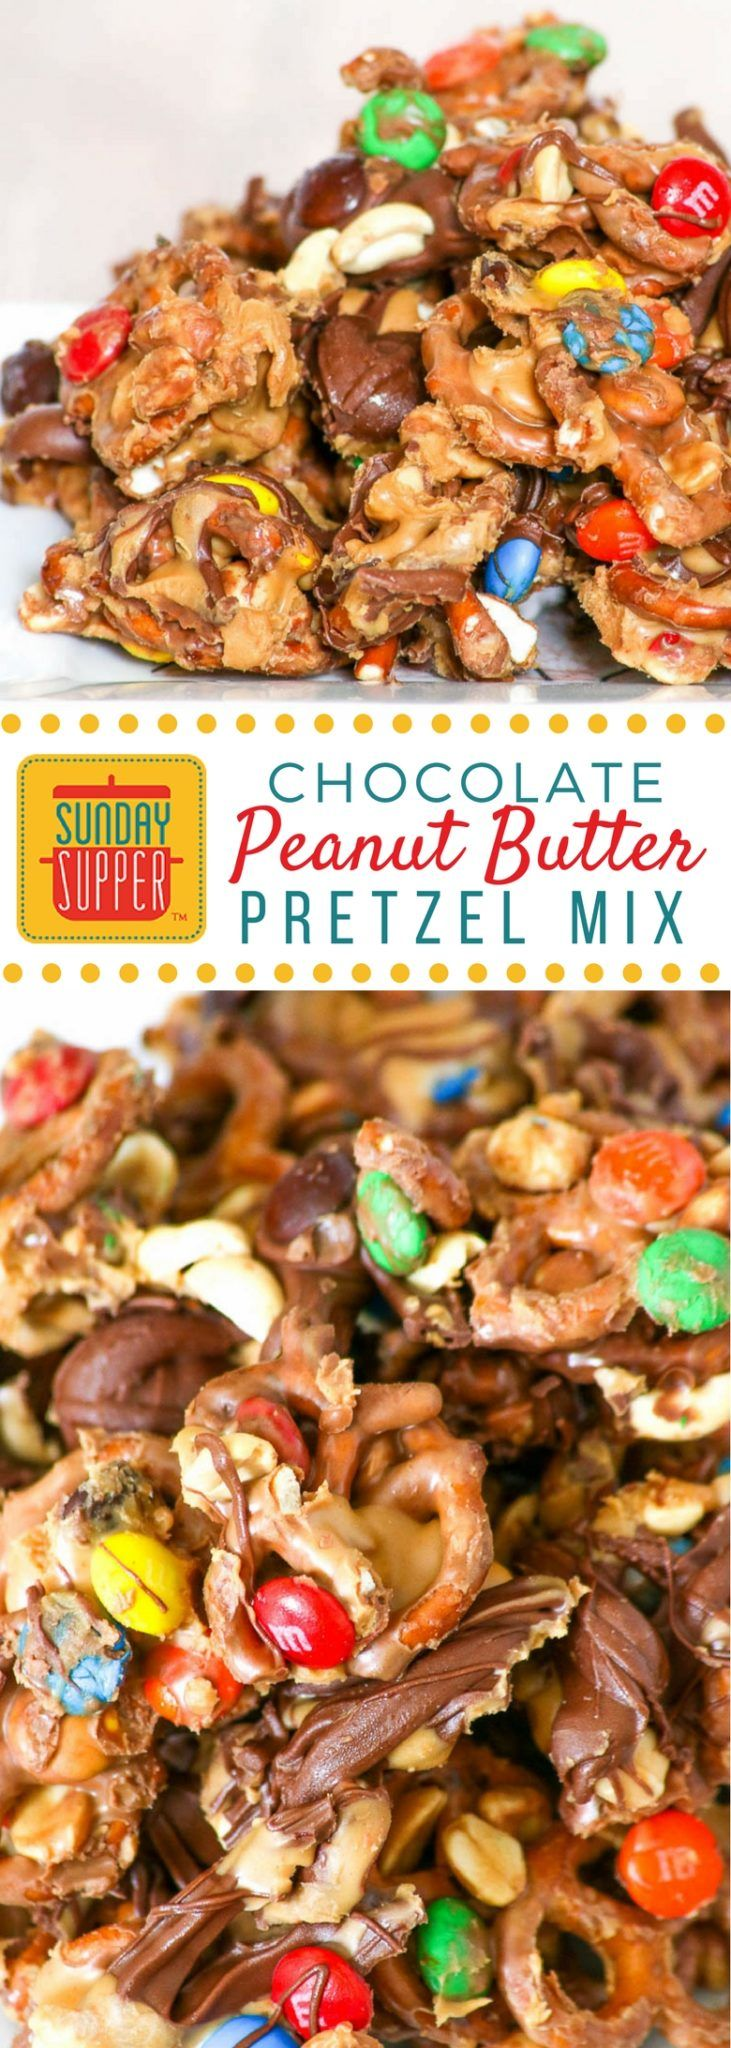 The perfect mix of sweet and salty, this chocolate peanut butter pretzel mix is created right in the pretzel bag. What could be easier? #SundaySupper